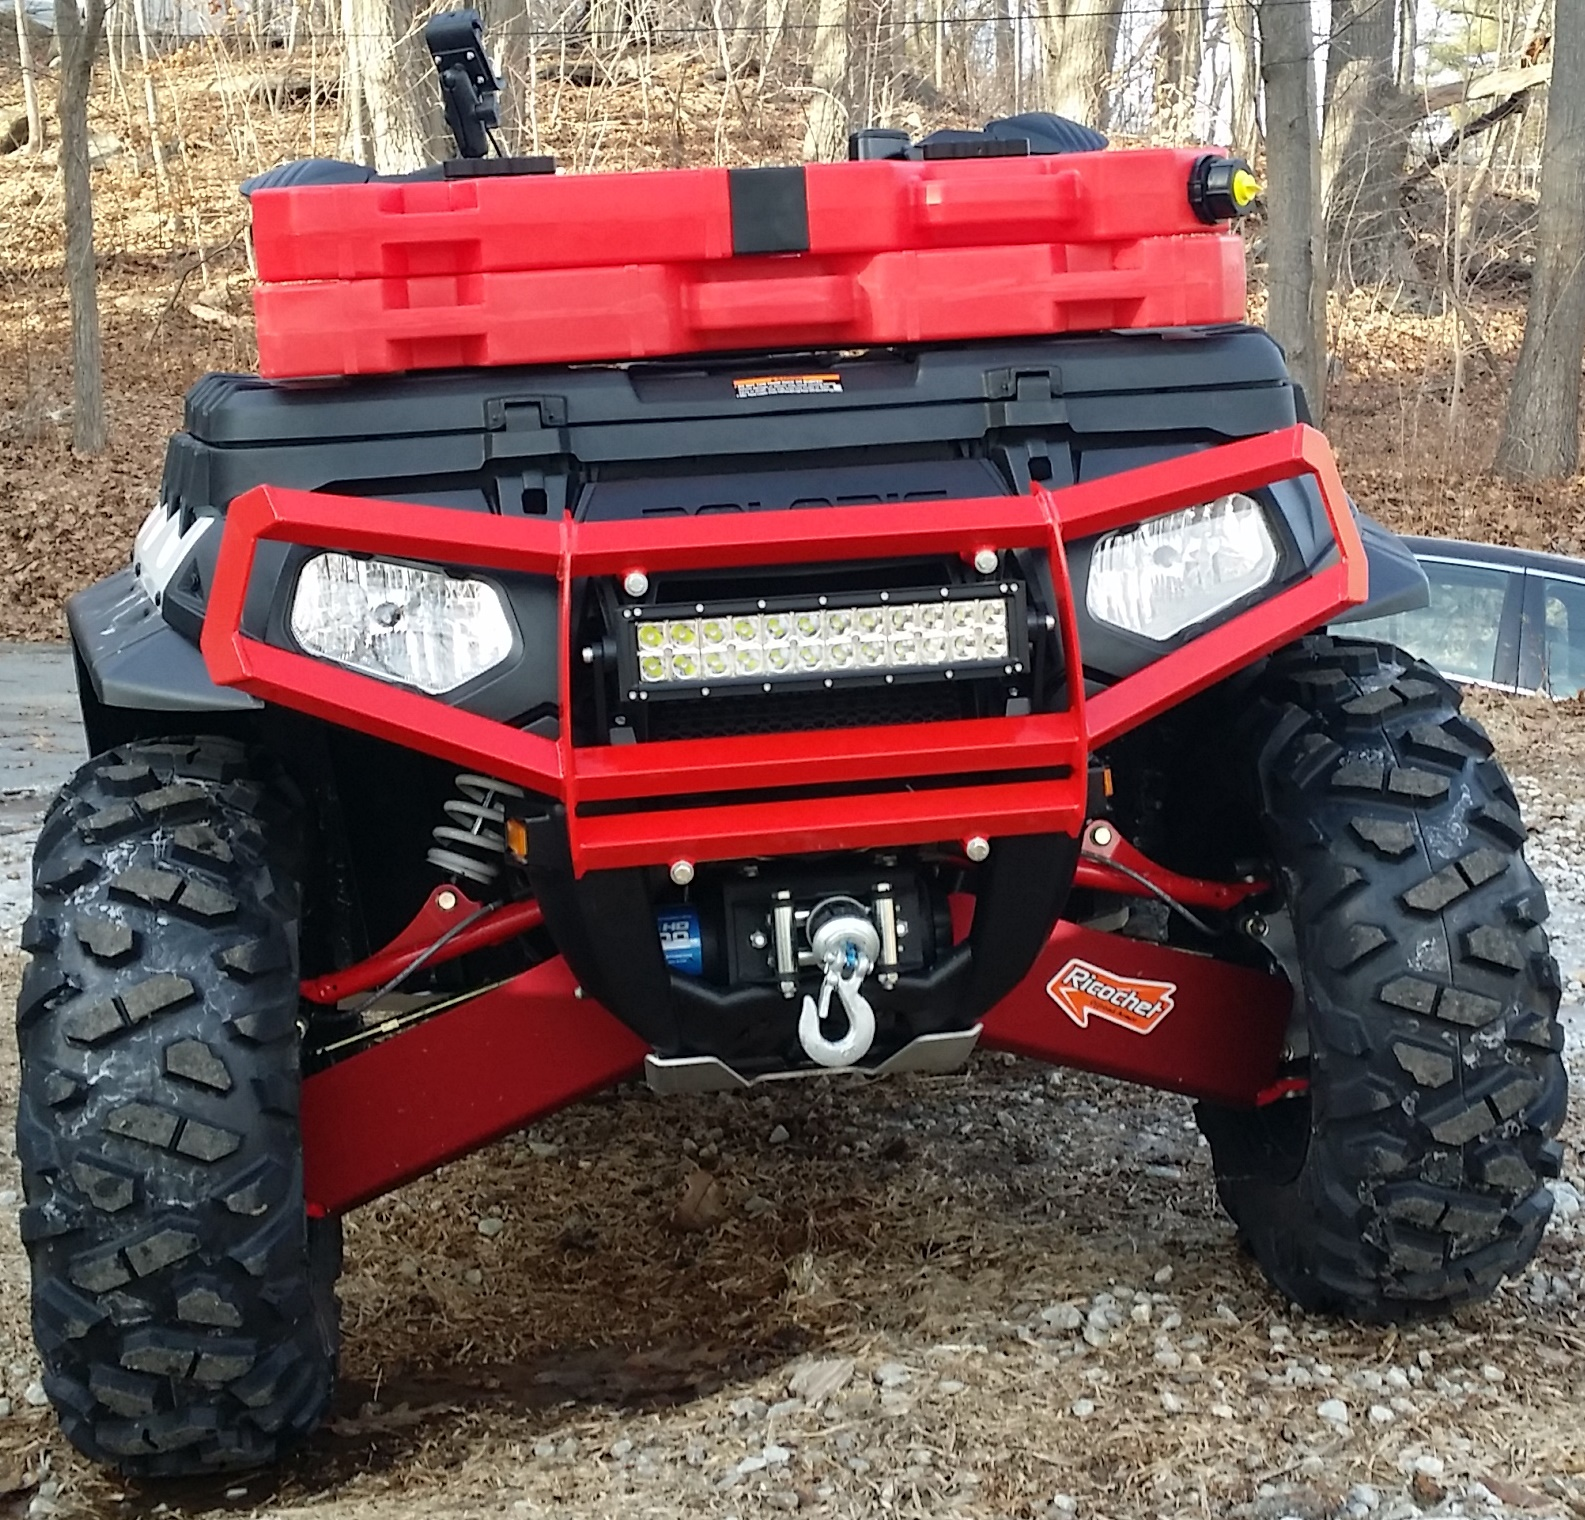 Led light bar page 2 polaris atv forum attachment 24159 mozeypictures Image collections